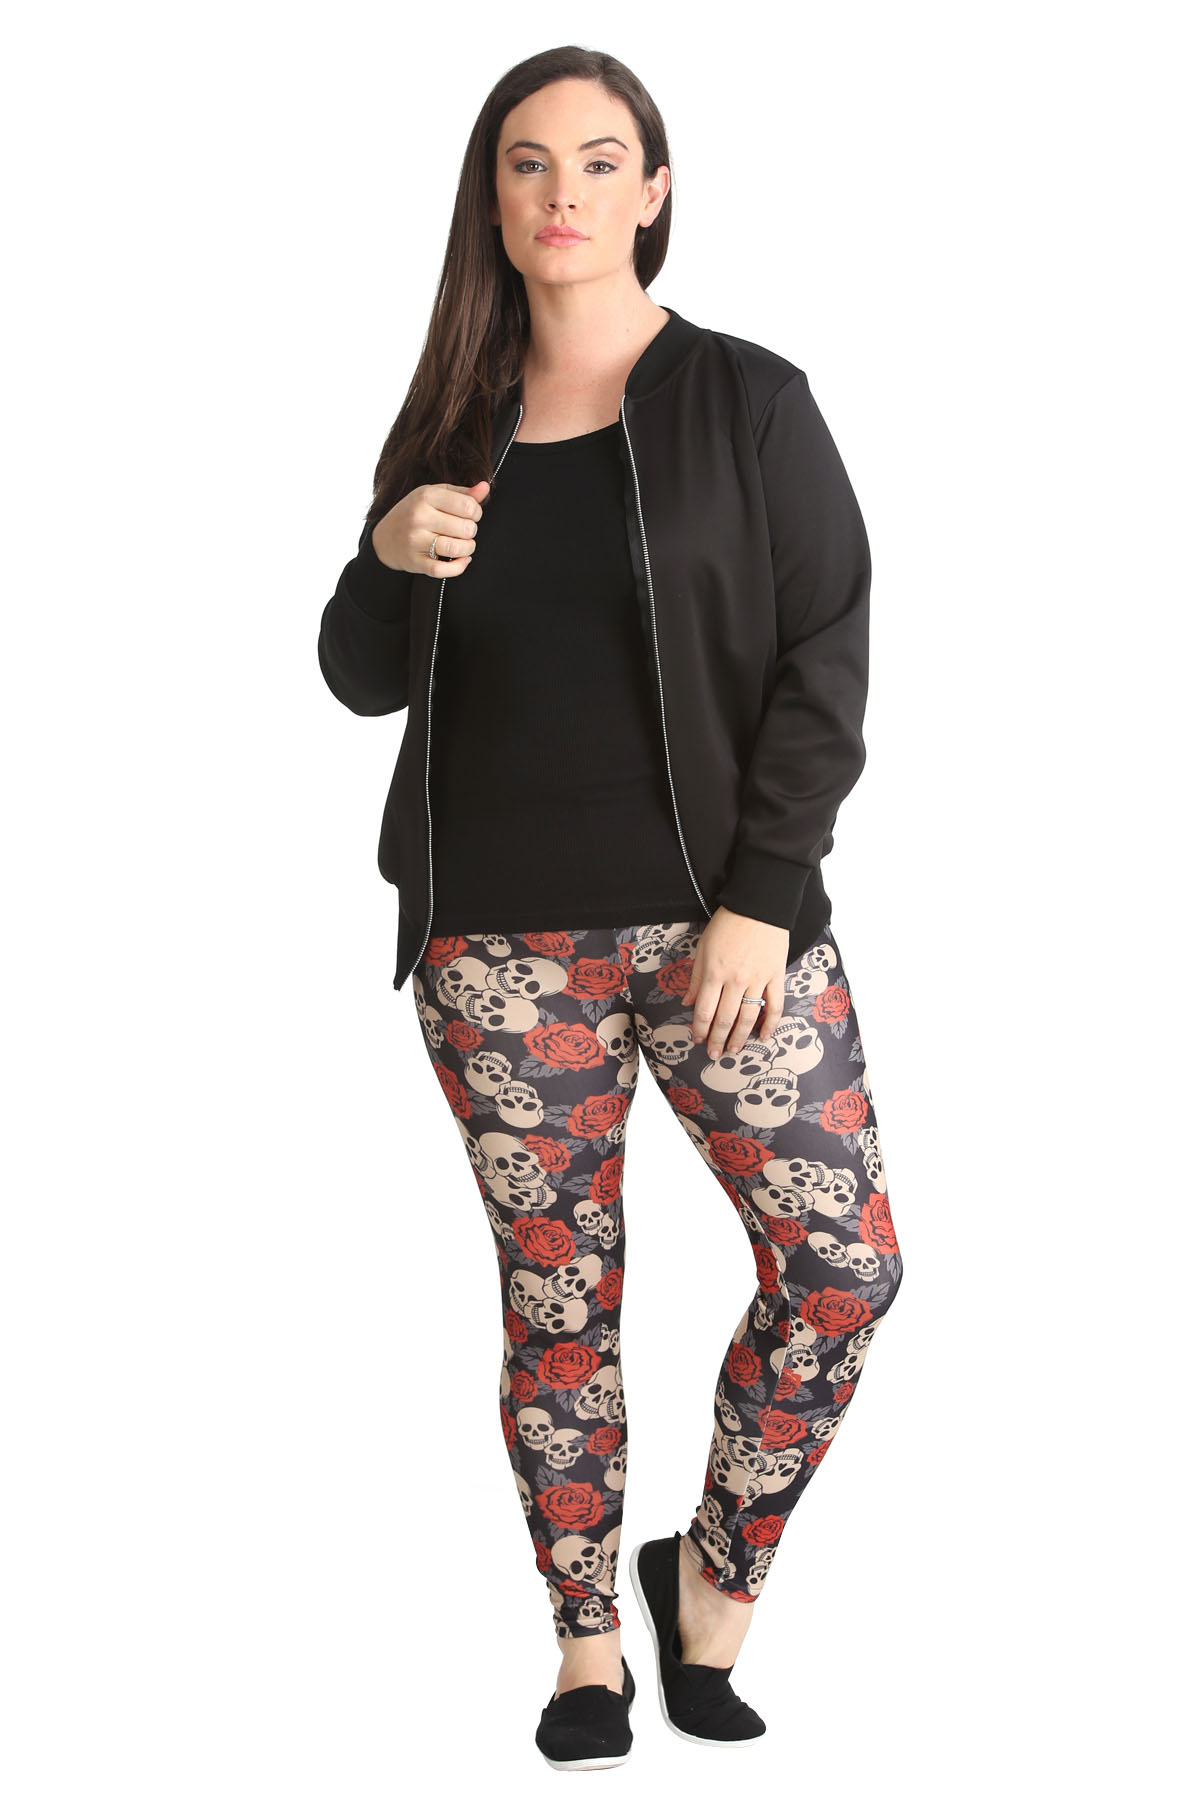 Find Black Plus Size Leggings, Brown Plus Size Leggings and more at Macy's. Macy's Presents: The Edit - A curated mix of fashion and inspiration Check It Out .